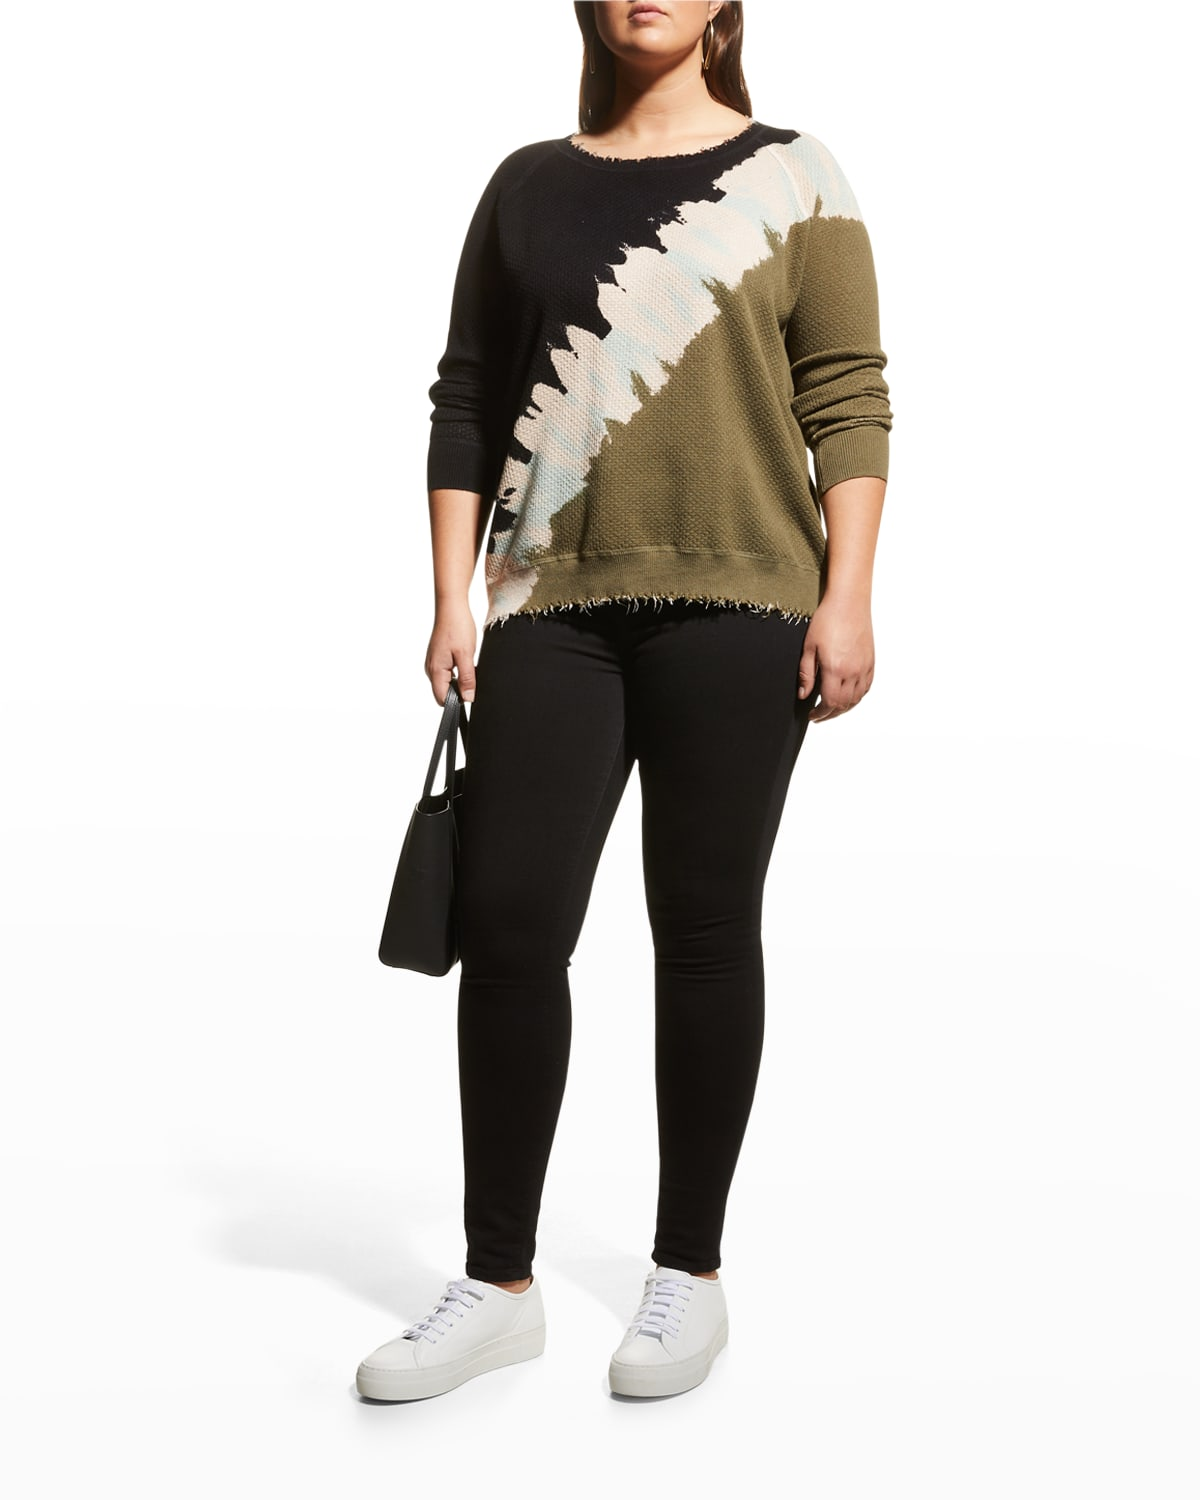 Plus Size The Eclipse Printed Sweater